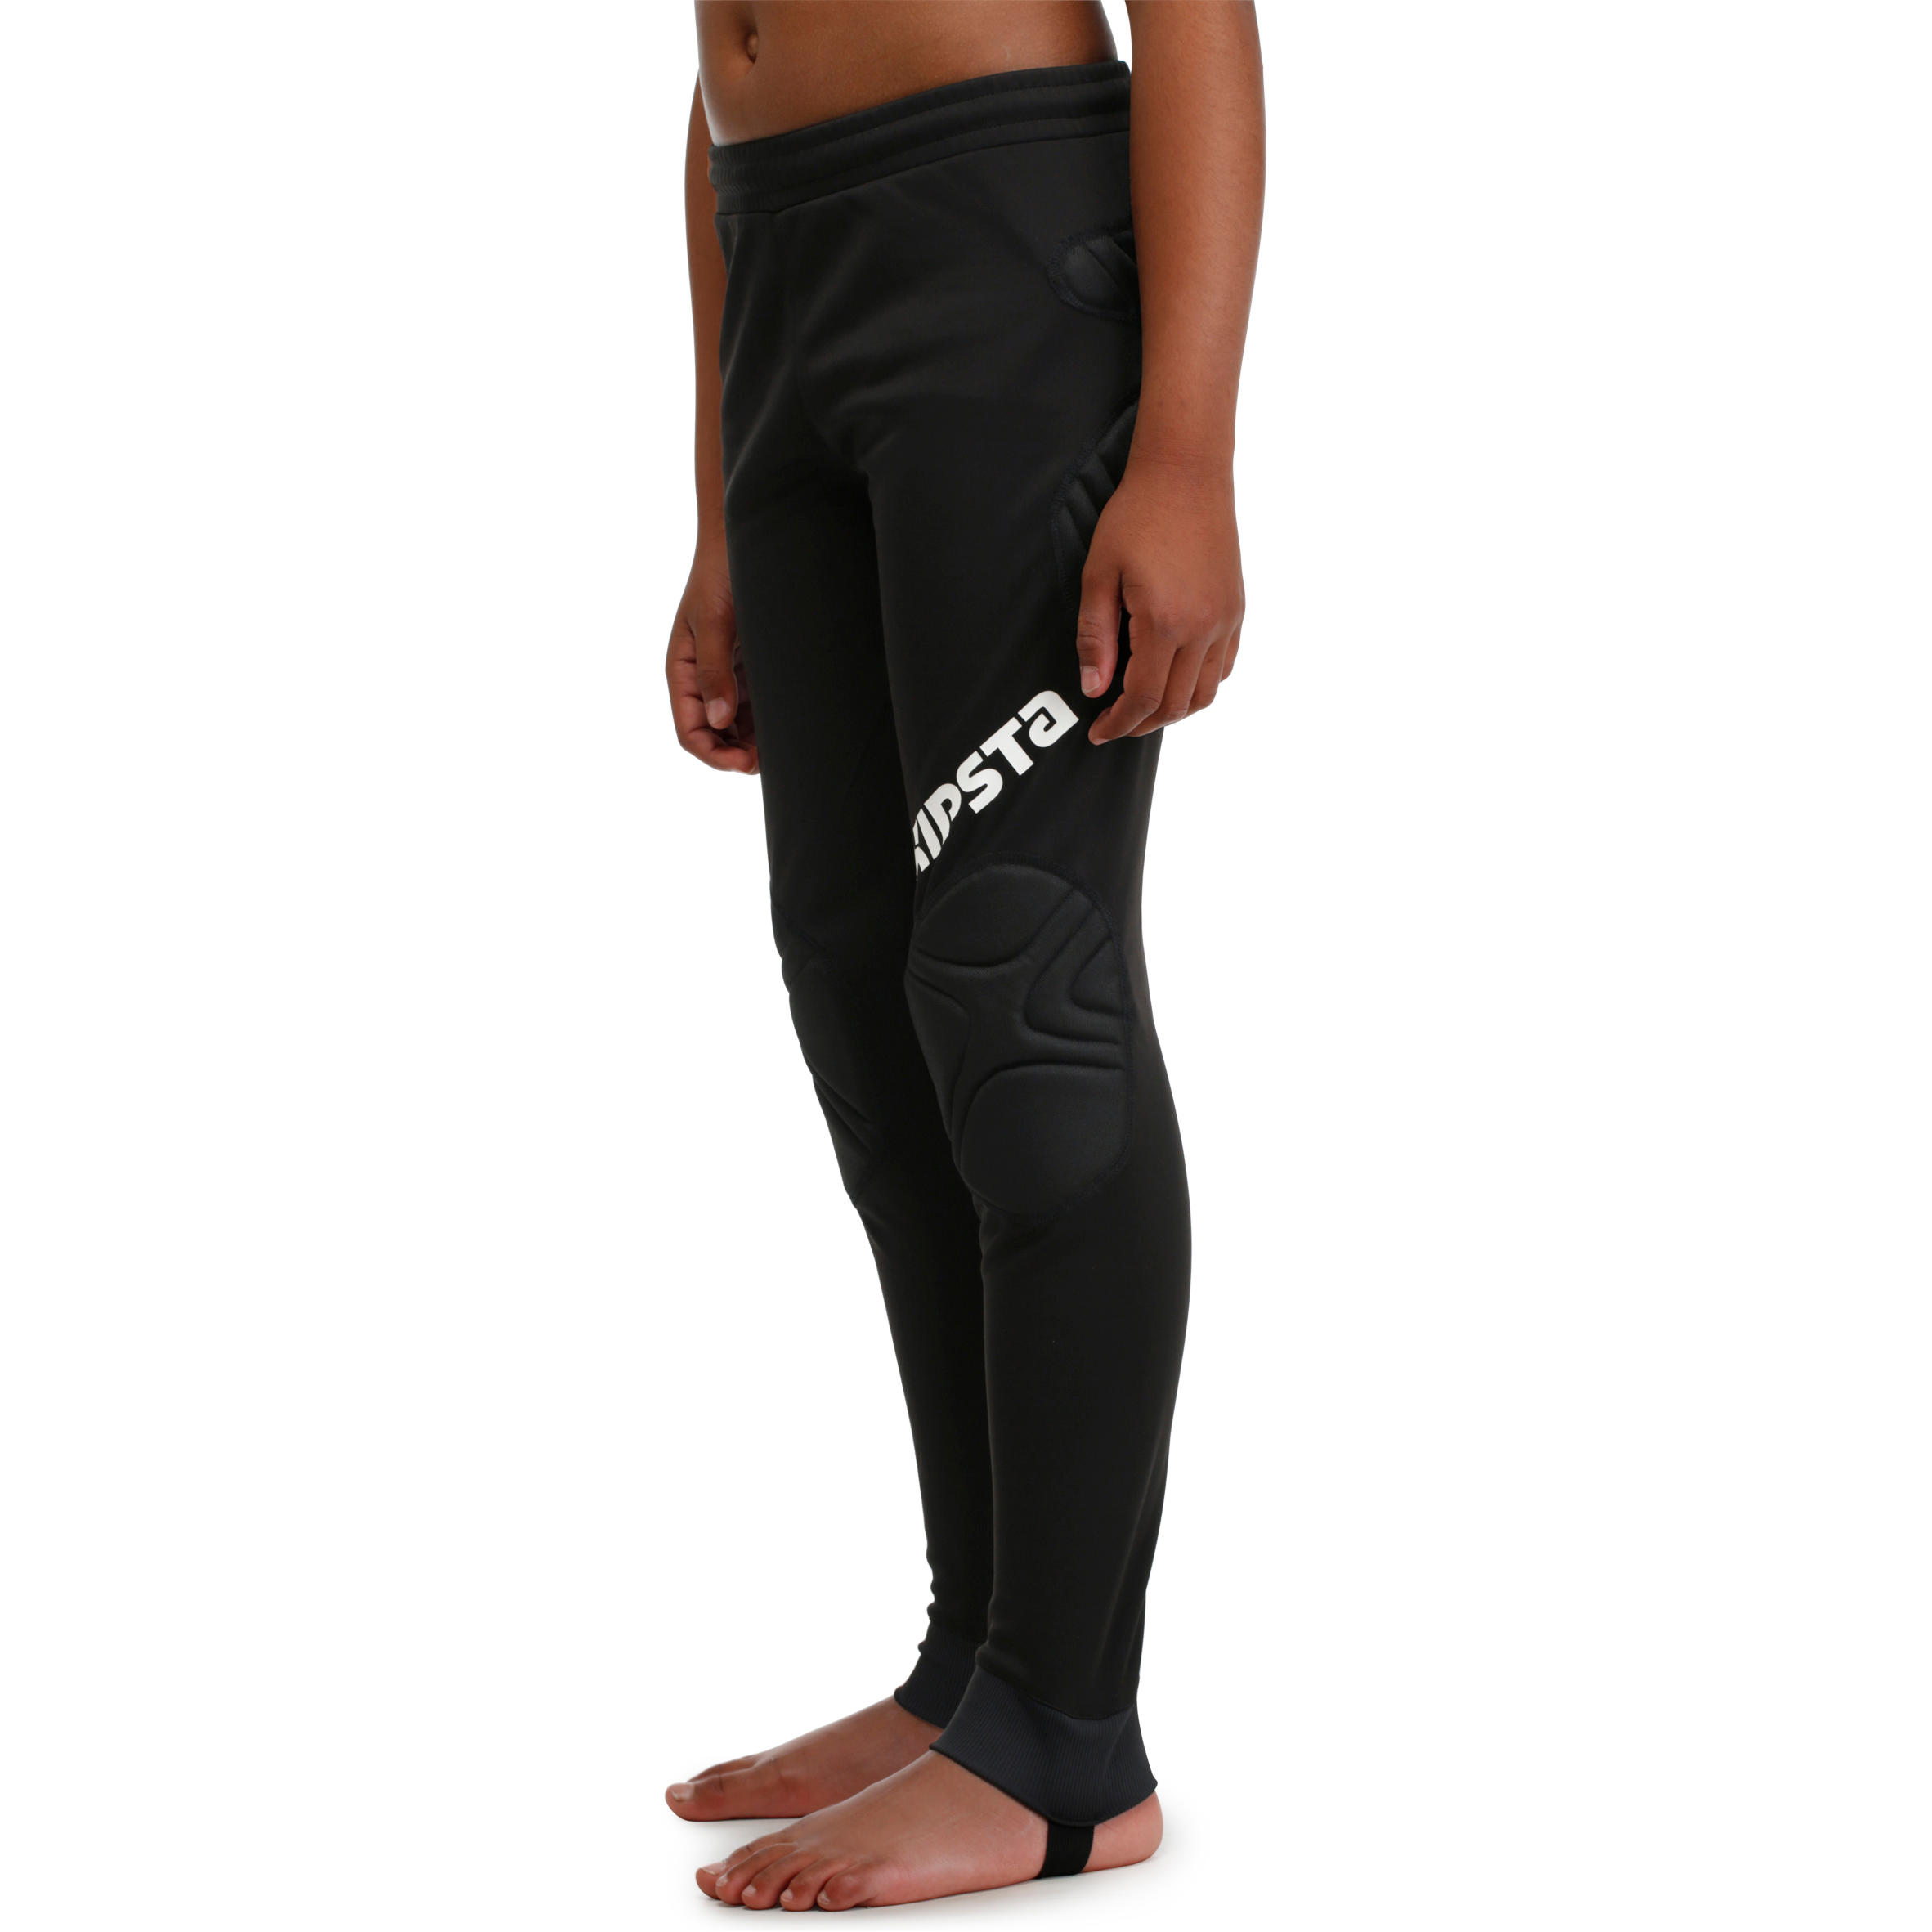 F300 Adult Football Goalkeeper Bottoms - Black